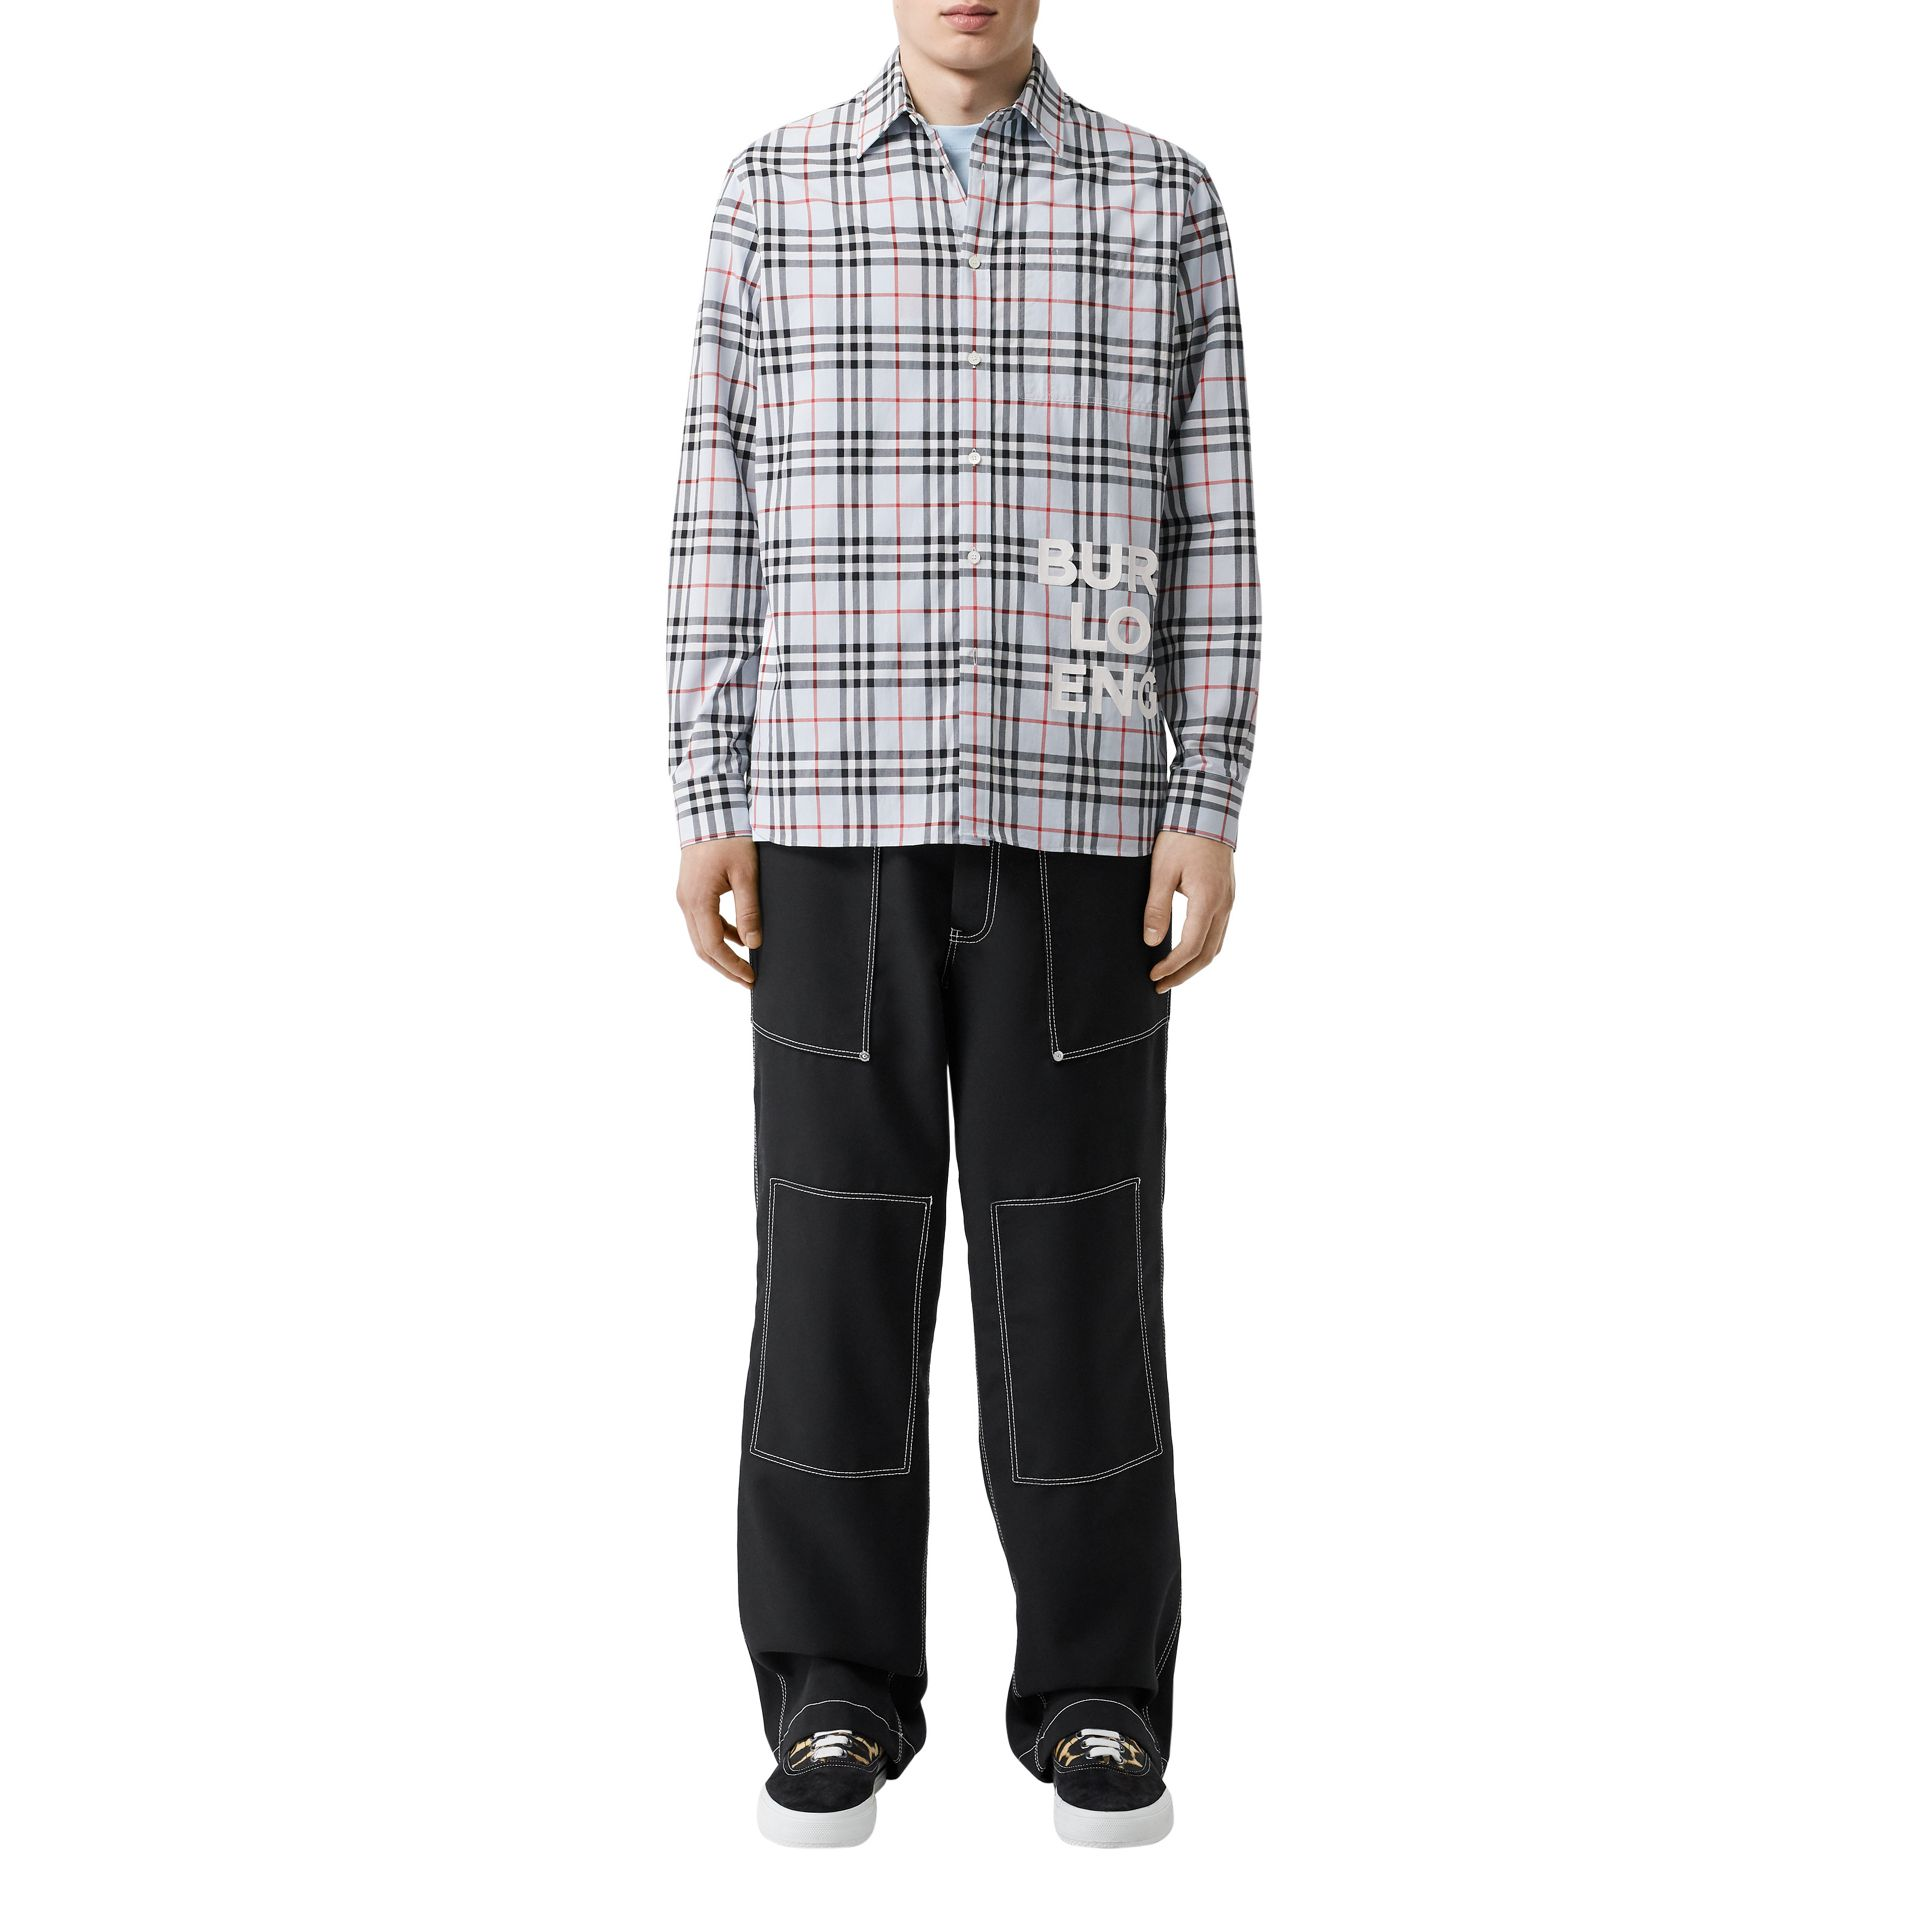 Logo Print Check Cotton Oversized Shirt in Pale Blue - Men | Burberry Hong Kong S.A.R - gallery image 5